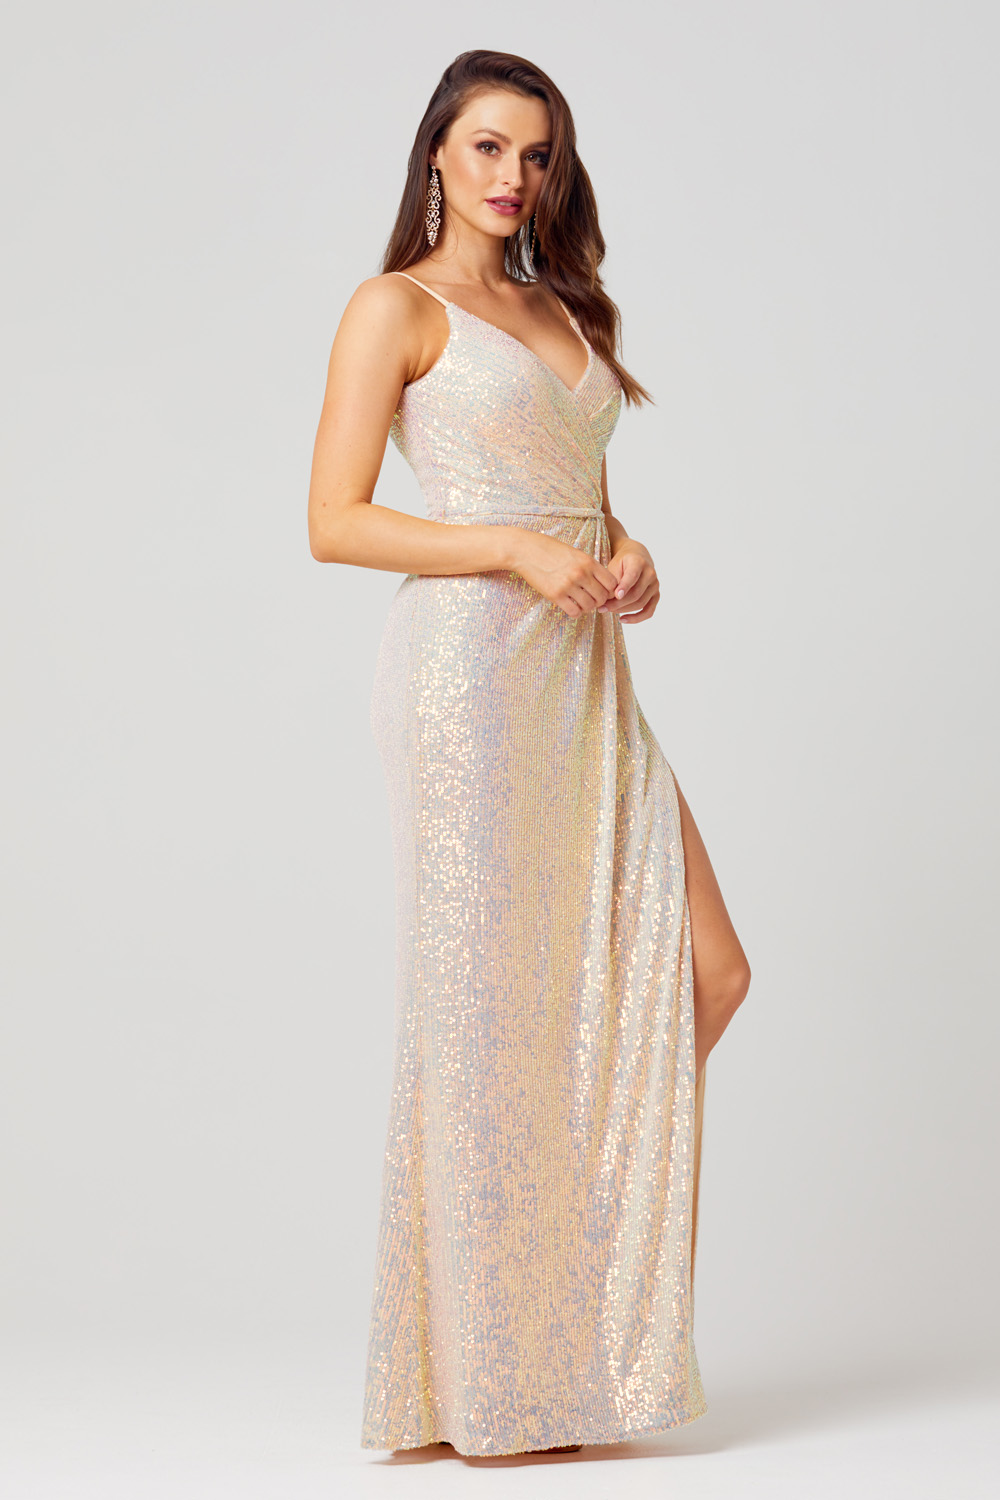 PO831 Danni formal dress side angle